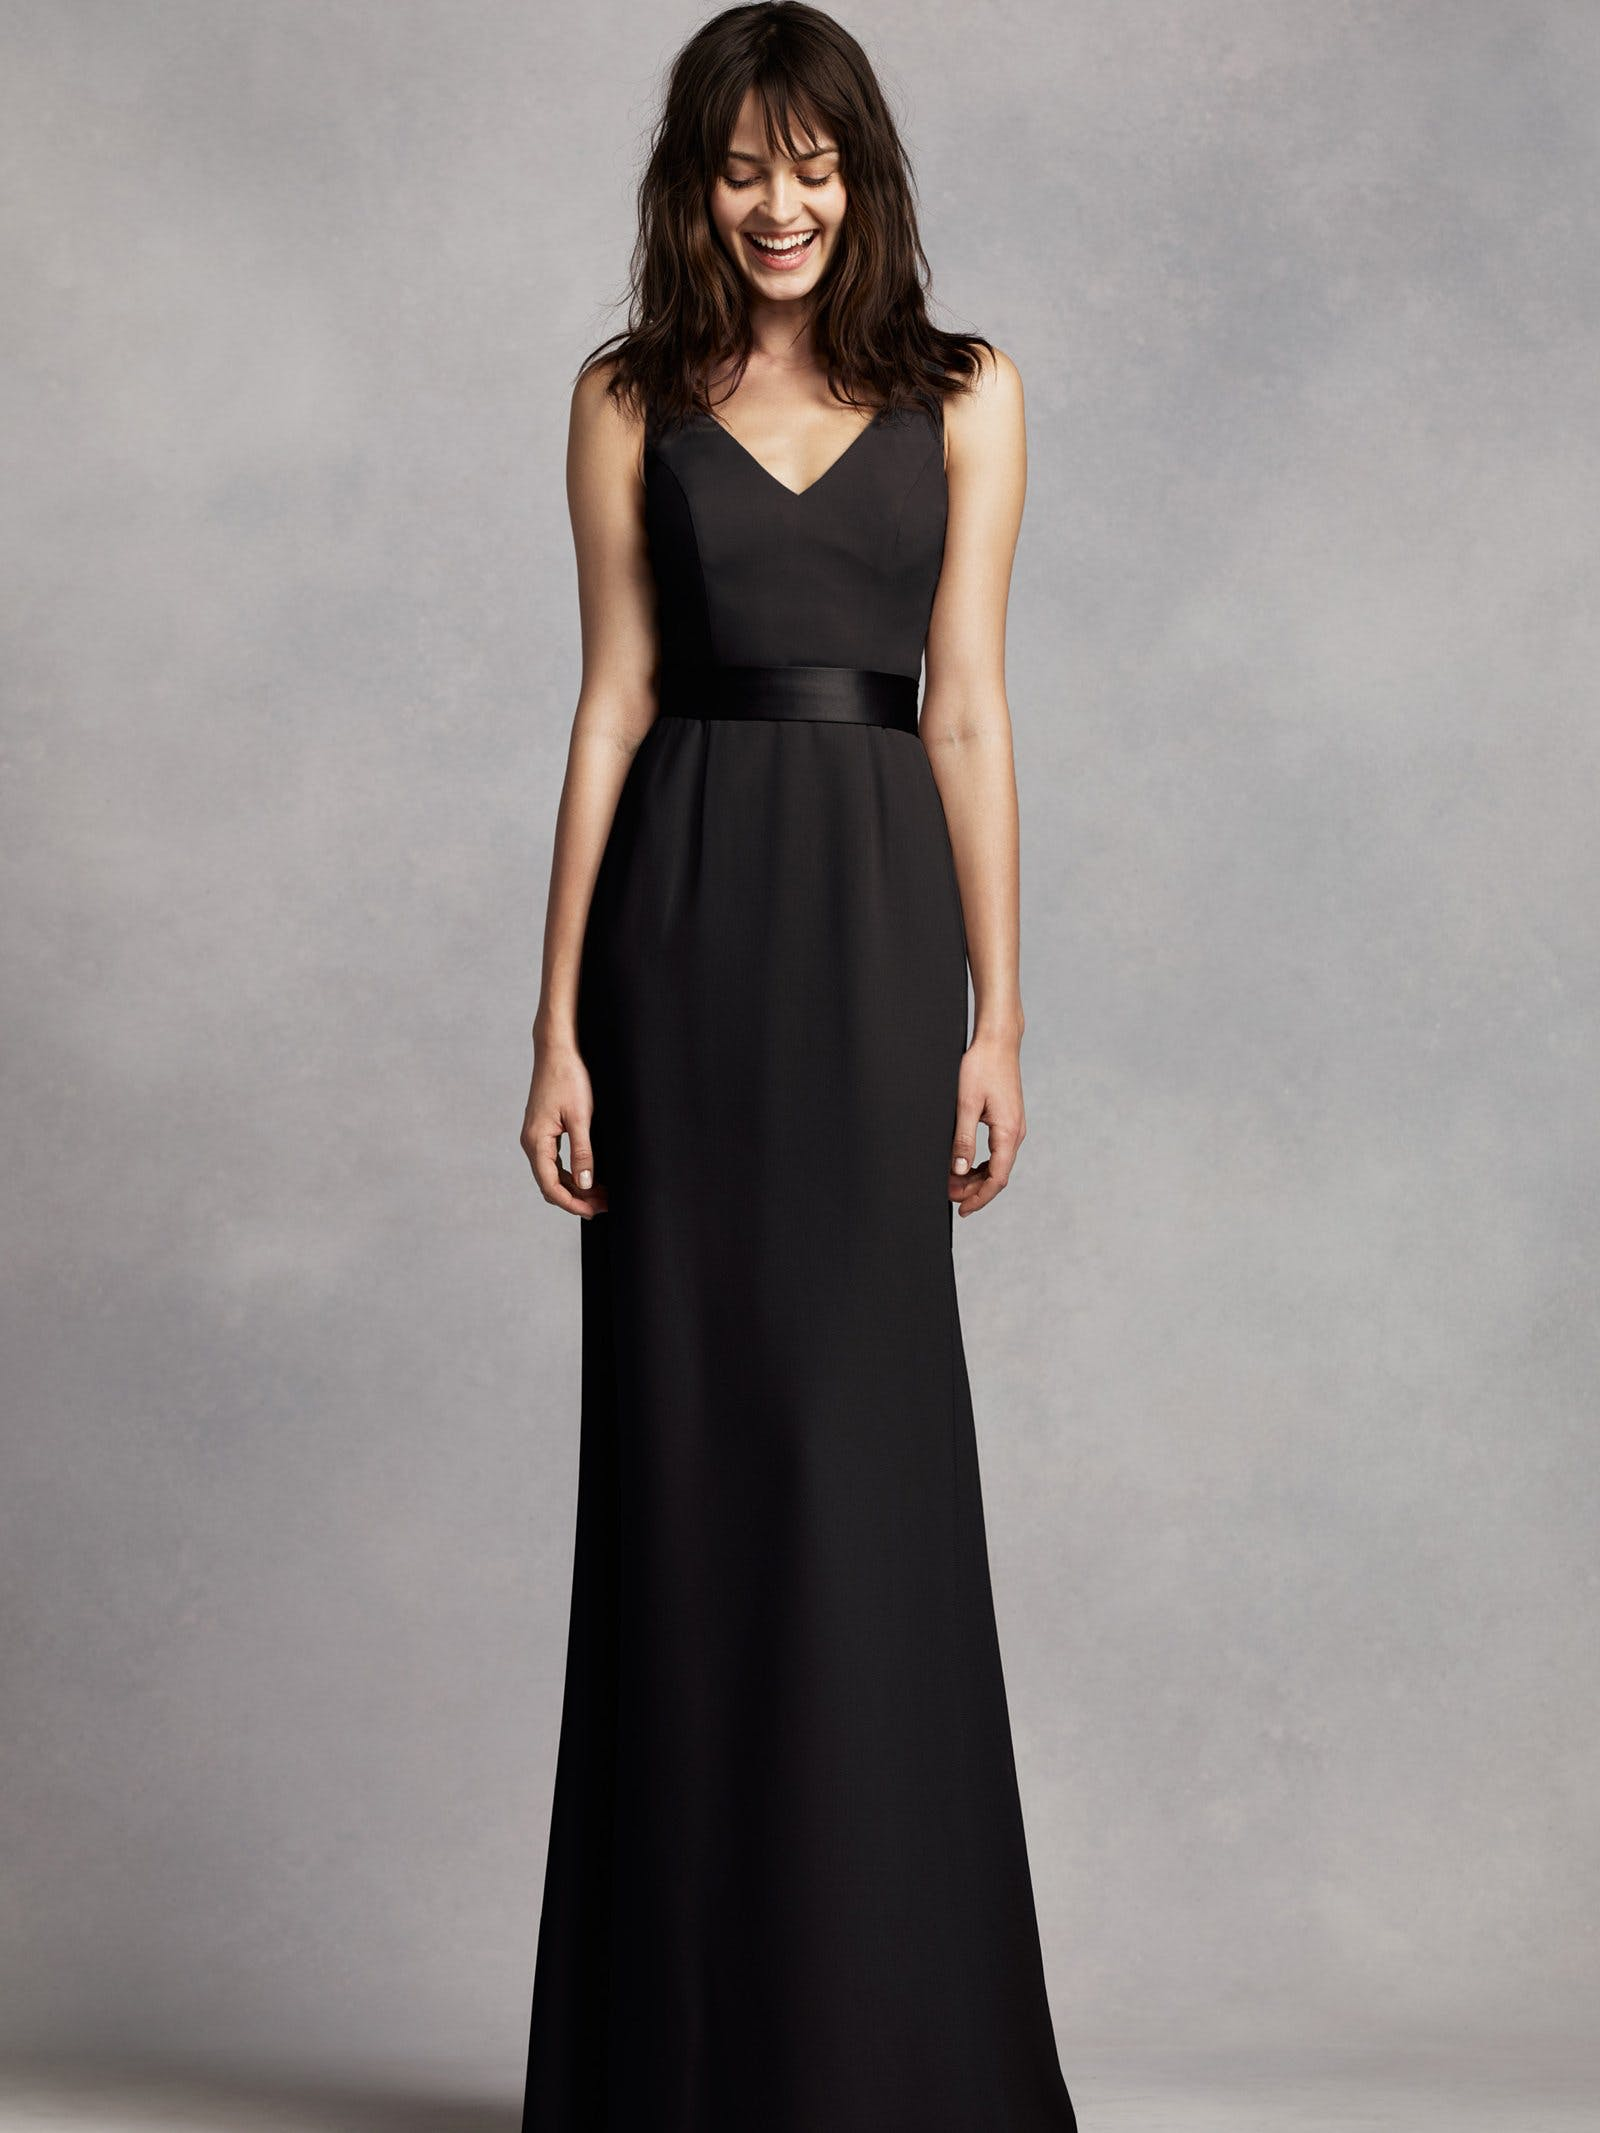 VW360214 bridesmaid dress   David s Bridal  2015 Vera Wang         David s Bridal 2015 Vera Wang VW360195  22